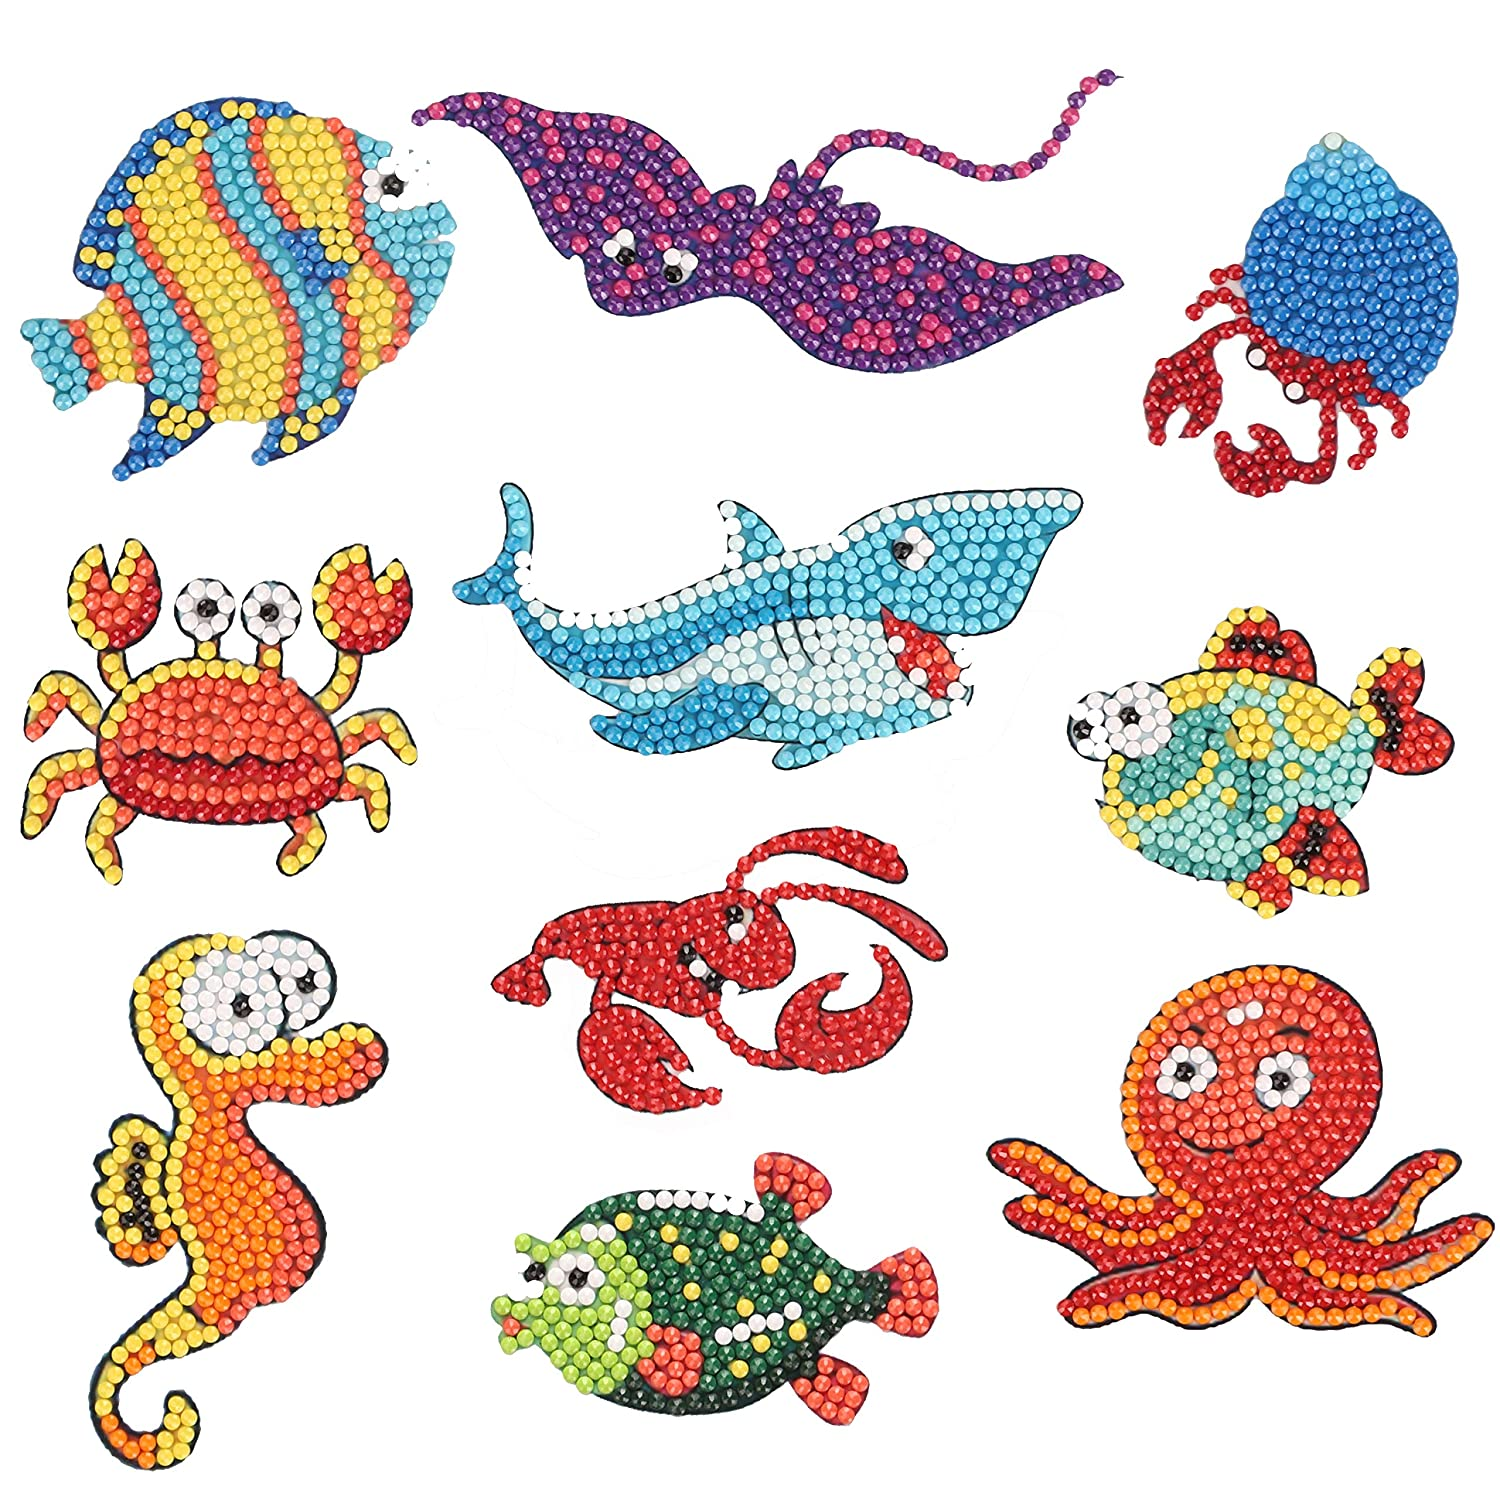 400 magic 5D DIY Diamond Painting Stickers Kits for Kids Easy Small Diamond Painting Kits Paint by Numbers to Having Fun at Party Sea World